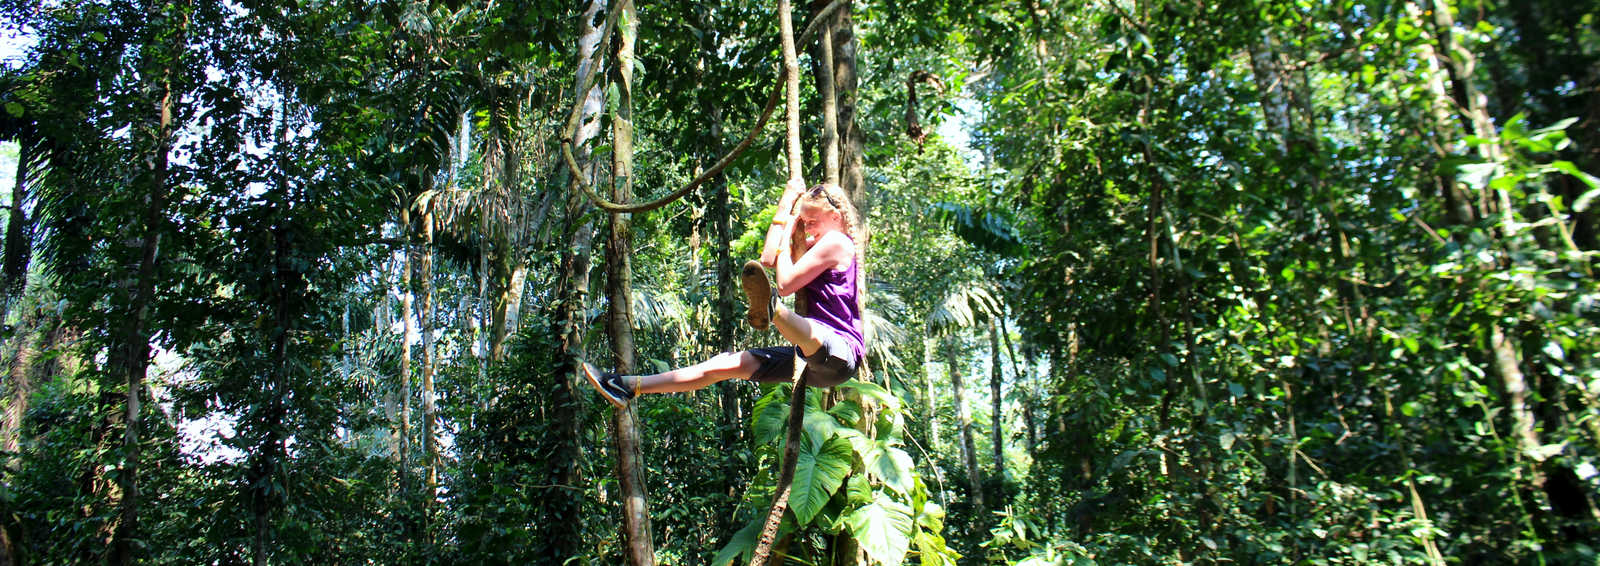 Girl swinging in the trees, Amazon, Peru